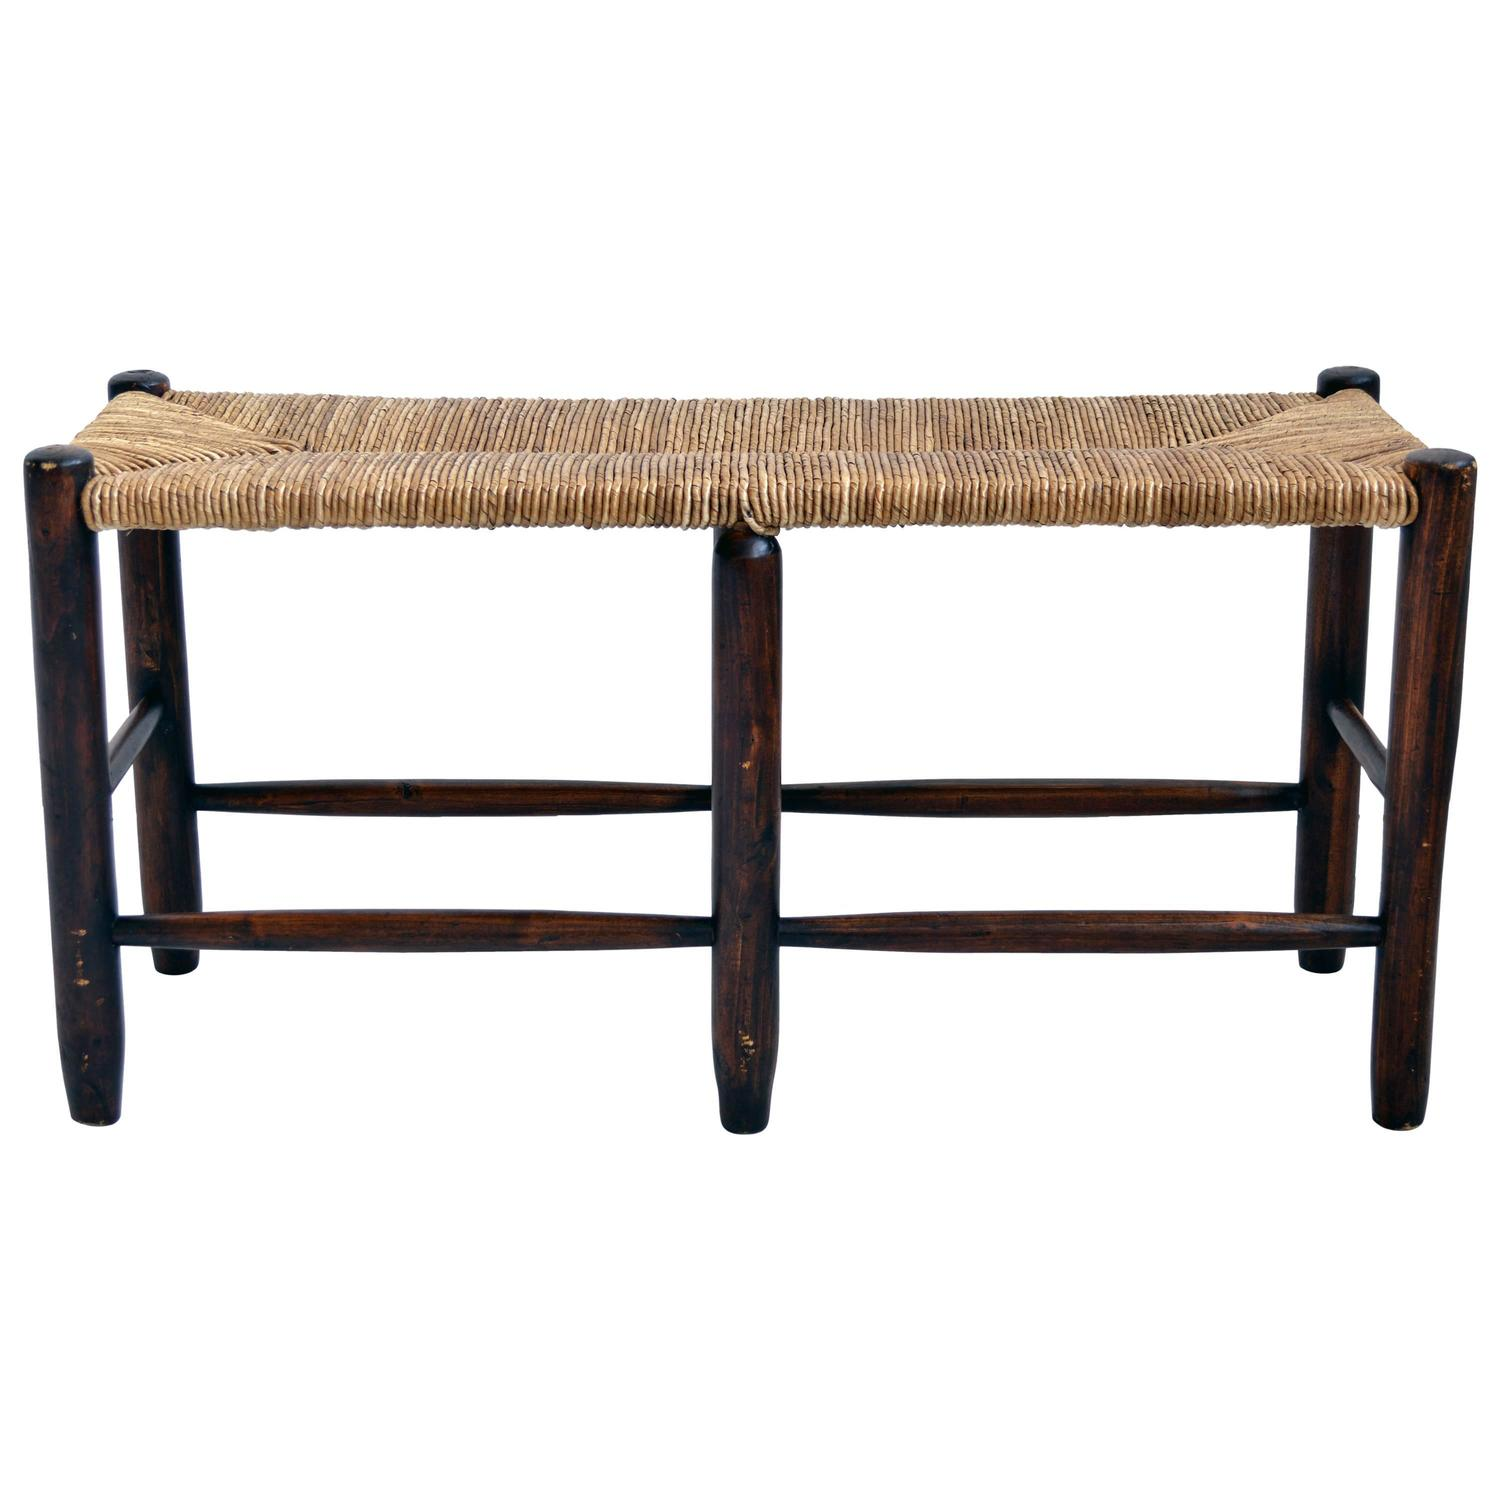 Wood Bench With Woven Rush Seat For Sale At 1stdibs